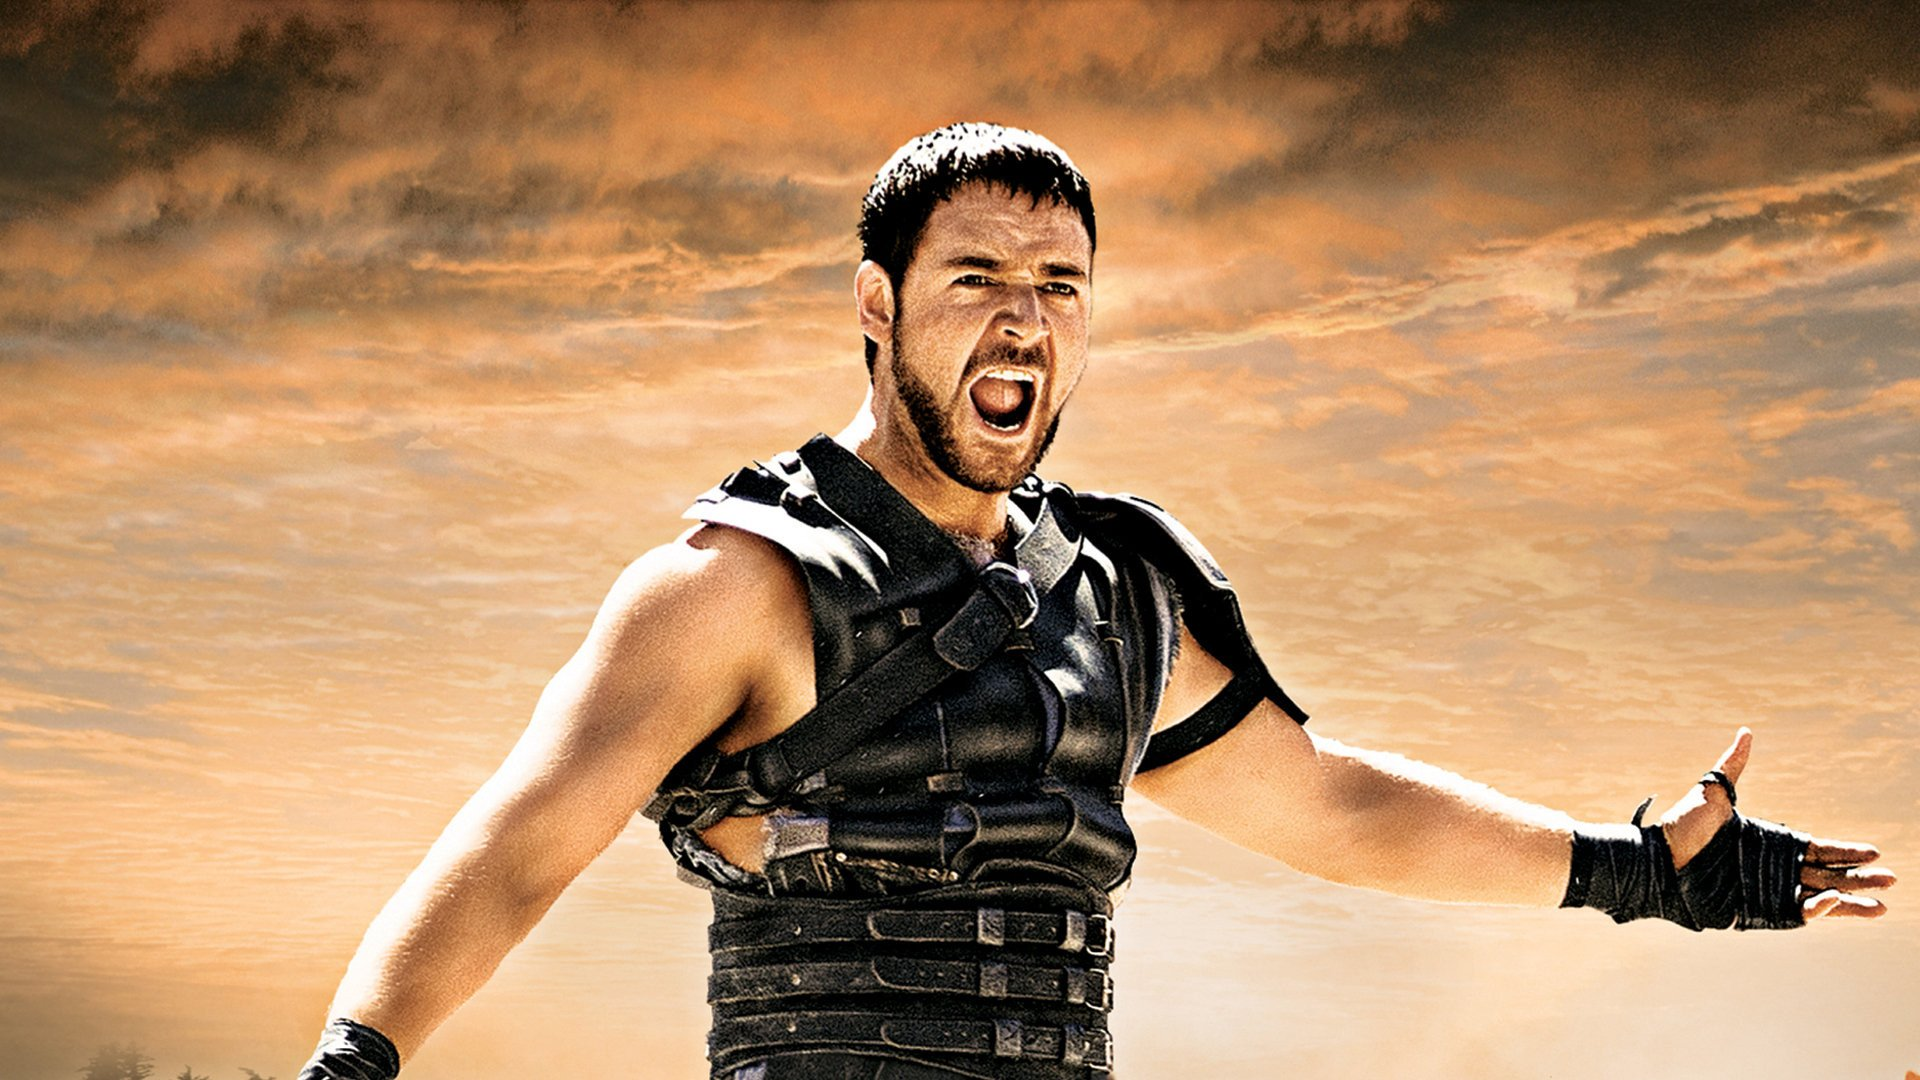 Gladiator HD Wallpapers Backgrounds Wallpaper